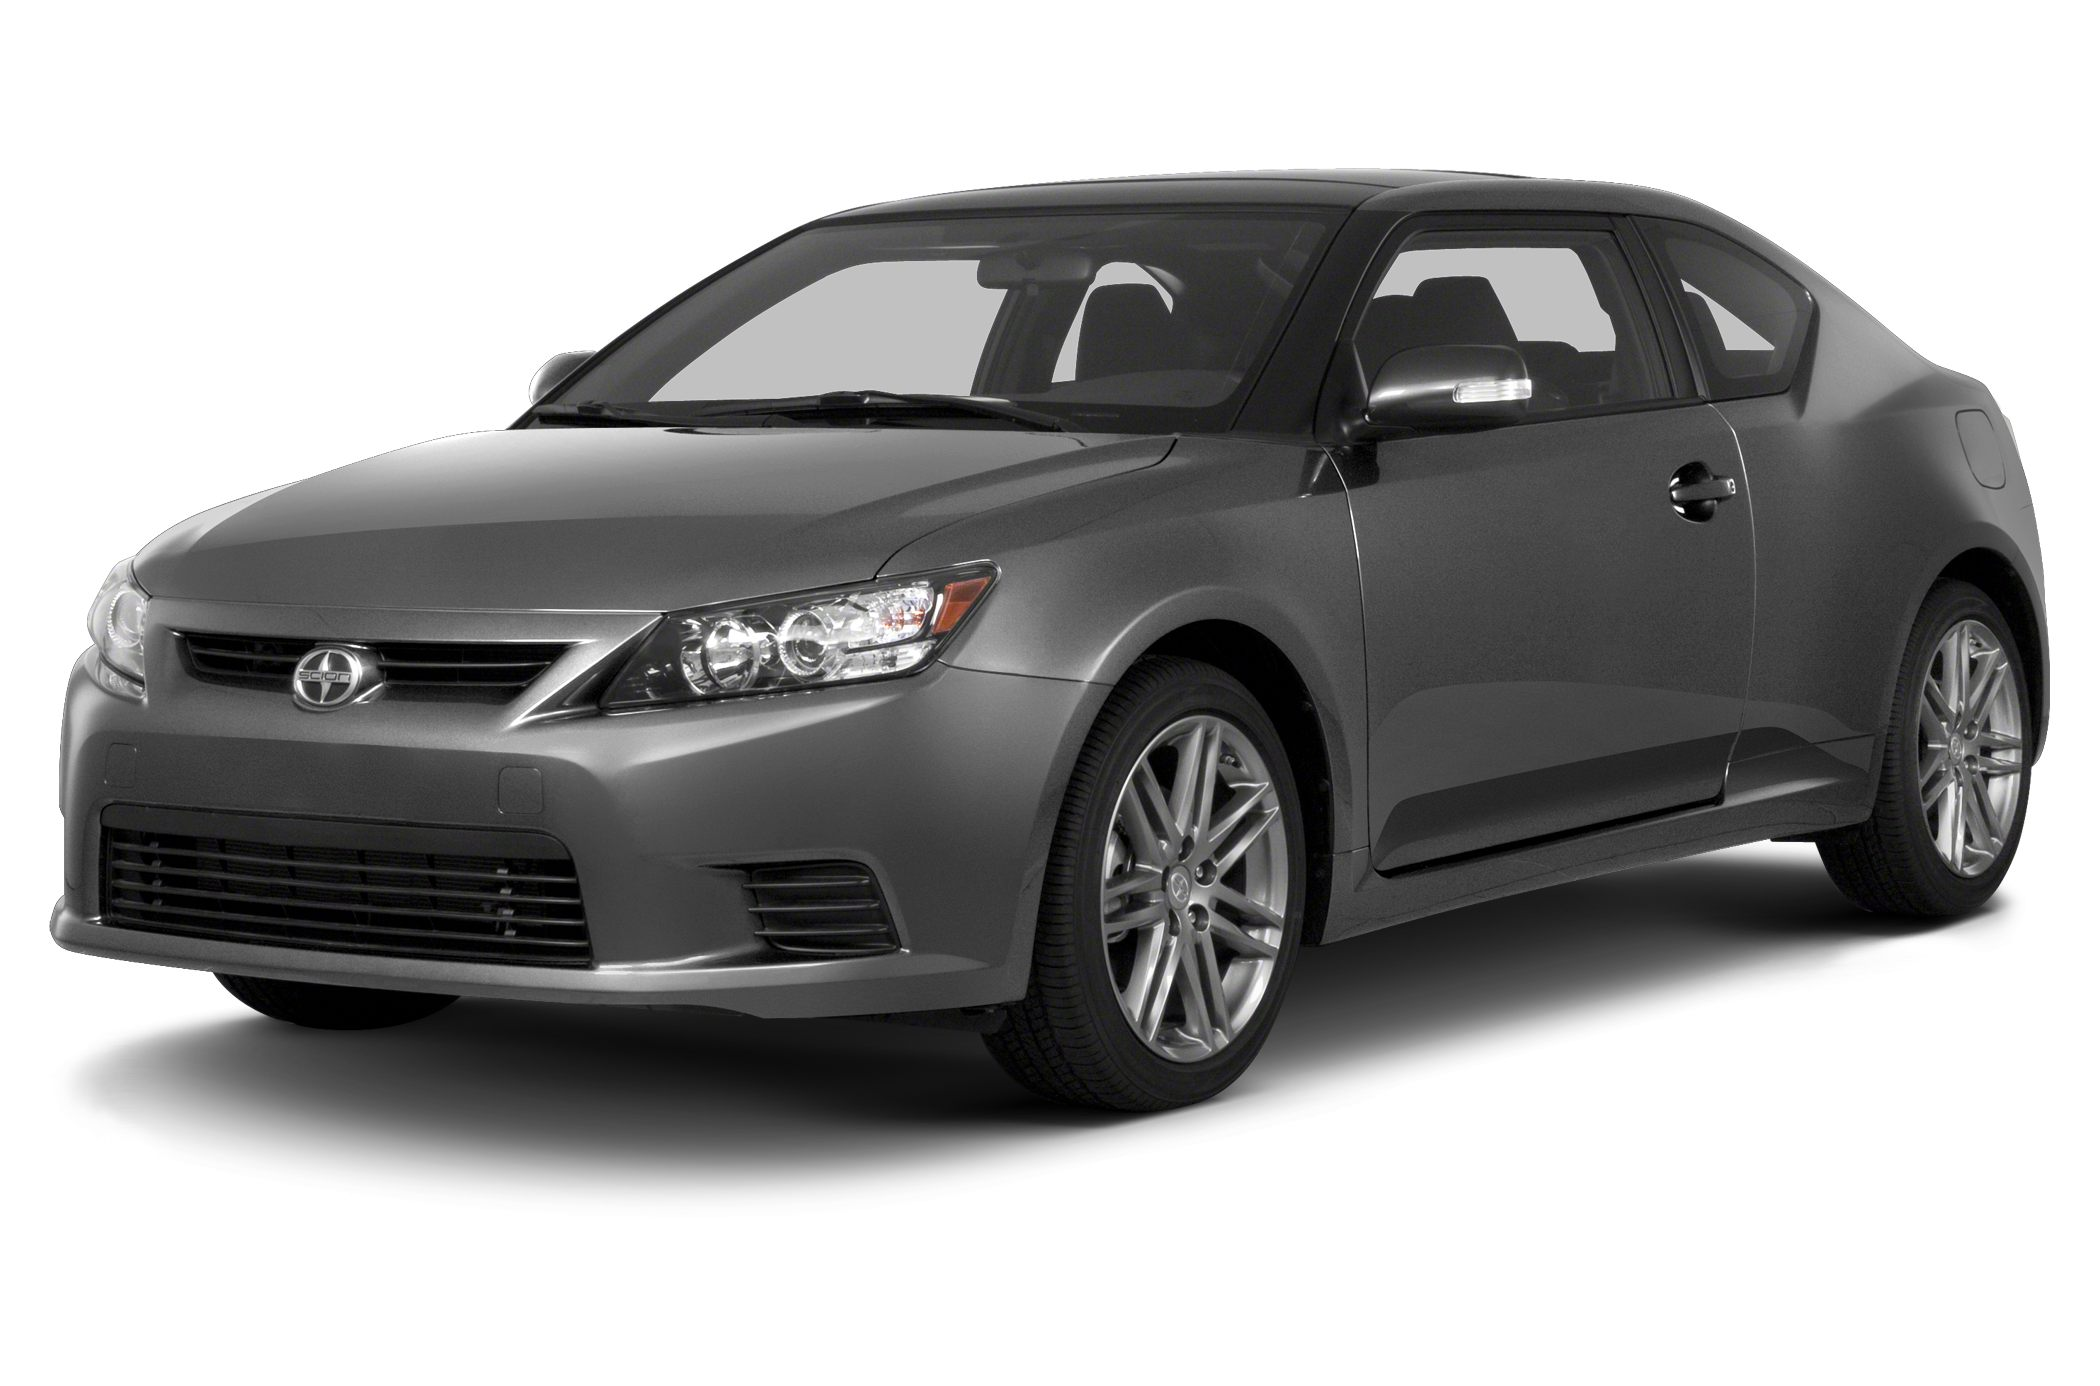 2013 Scion Tc Rs 8 0 Priced From 21 815 W Video Autoblog